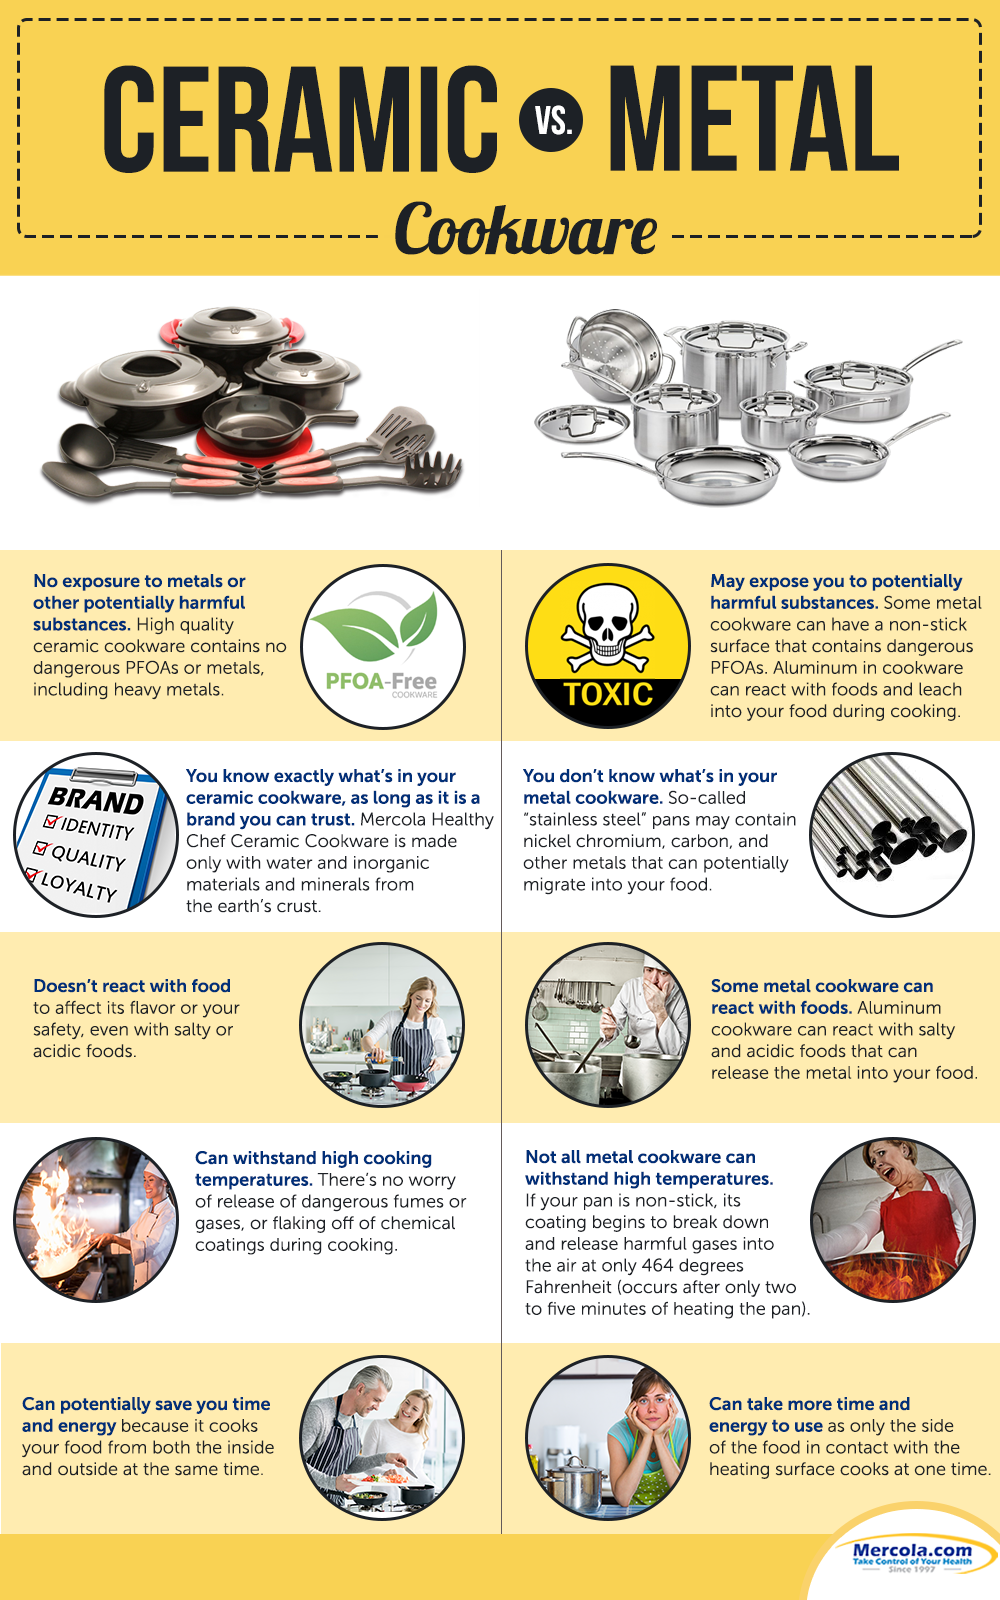 Comparison Between Ceramic And Metal Cookware Infographic